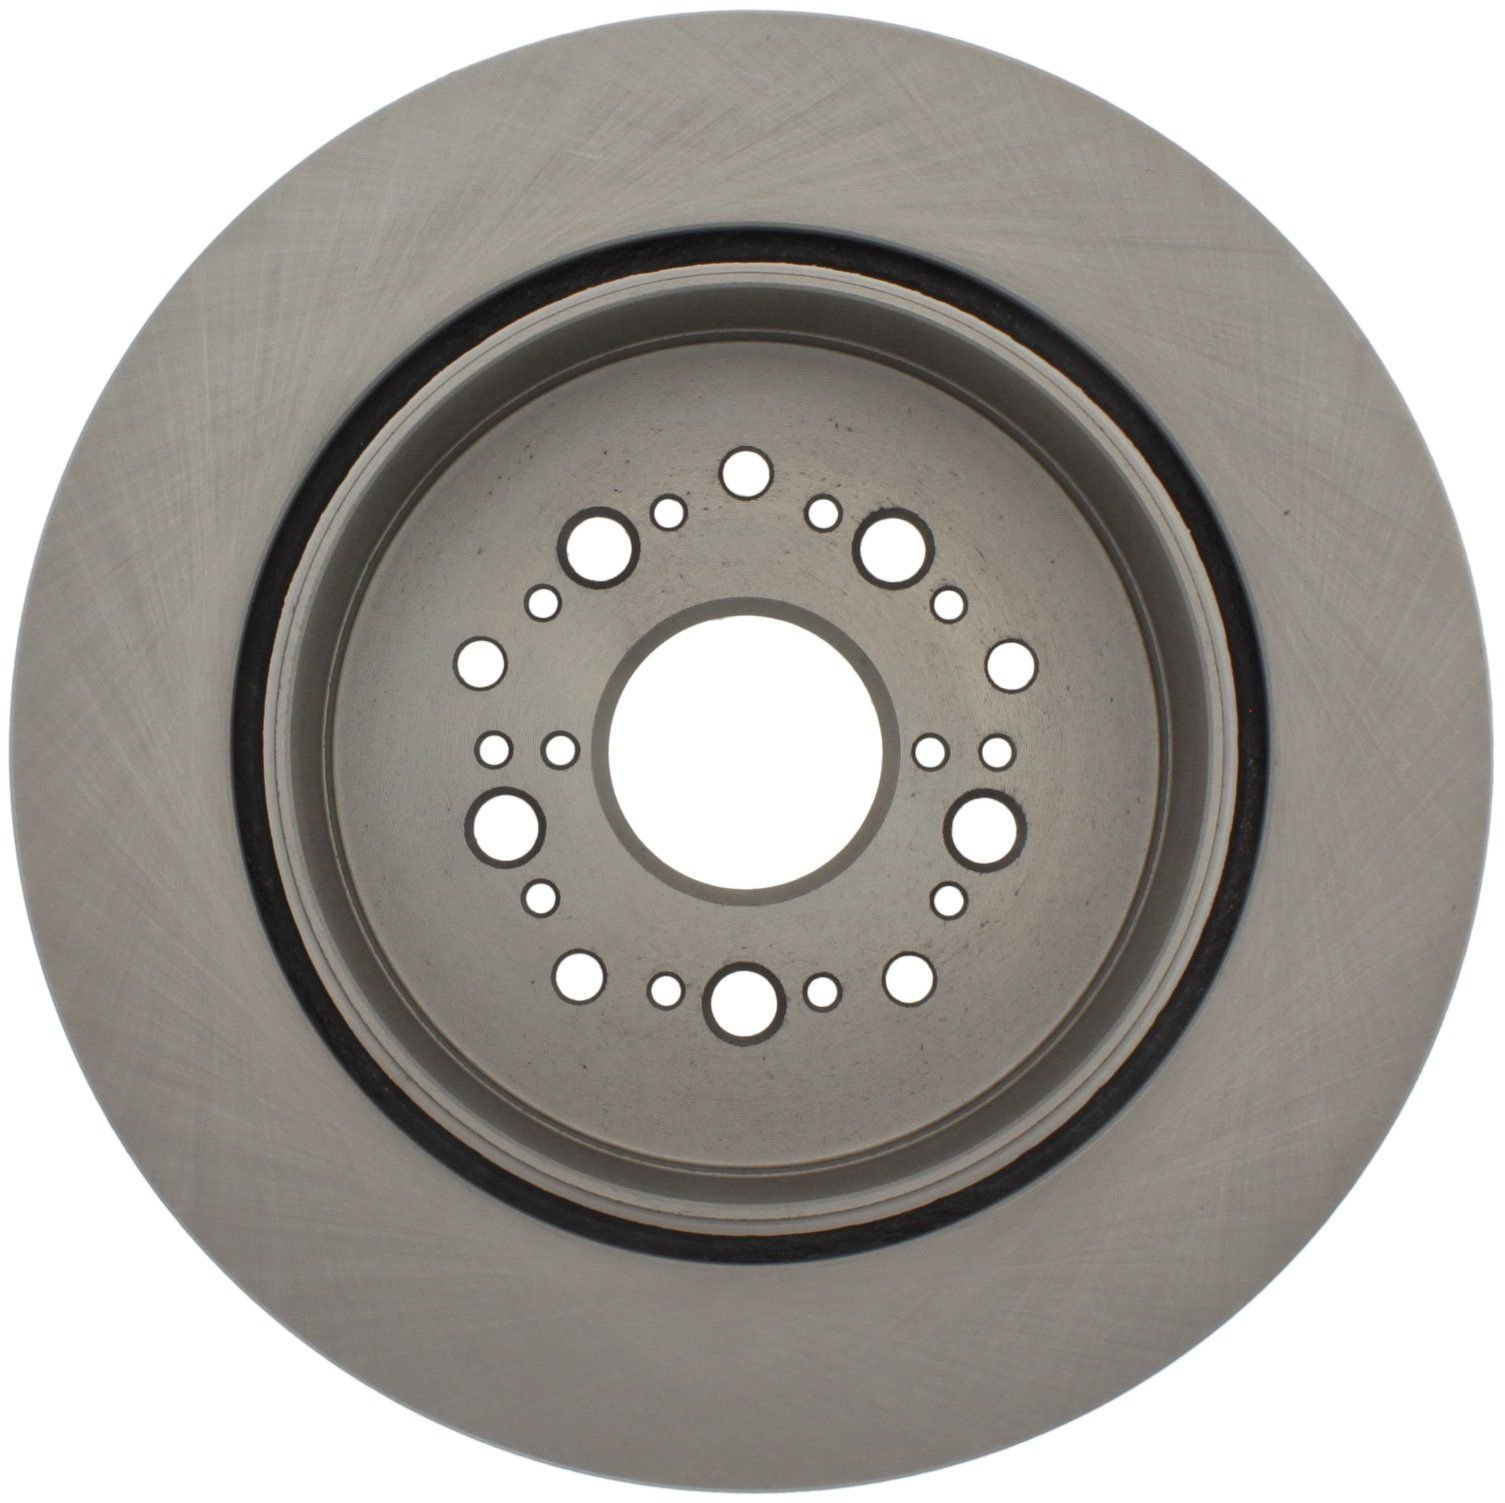 Lexus Sc400 Disc Brake Rotor Replacement Beck Arnley Bosch 1992 Parts Rear Centric 12144084